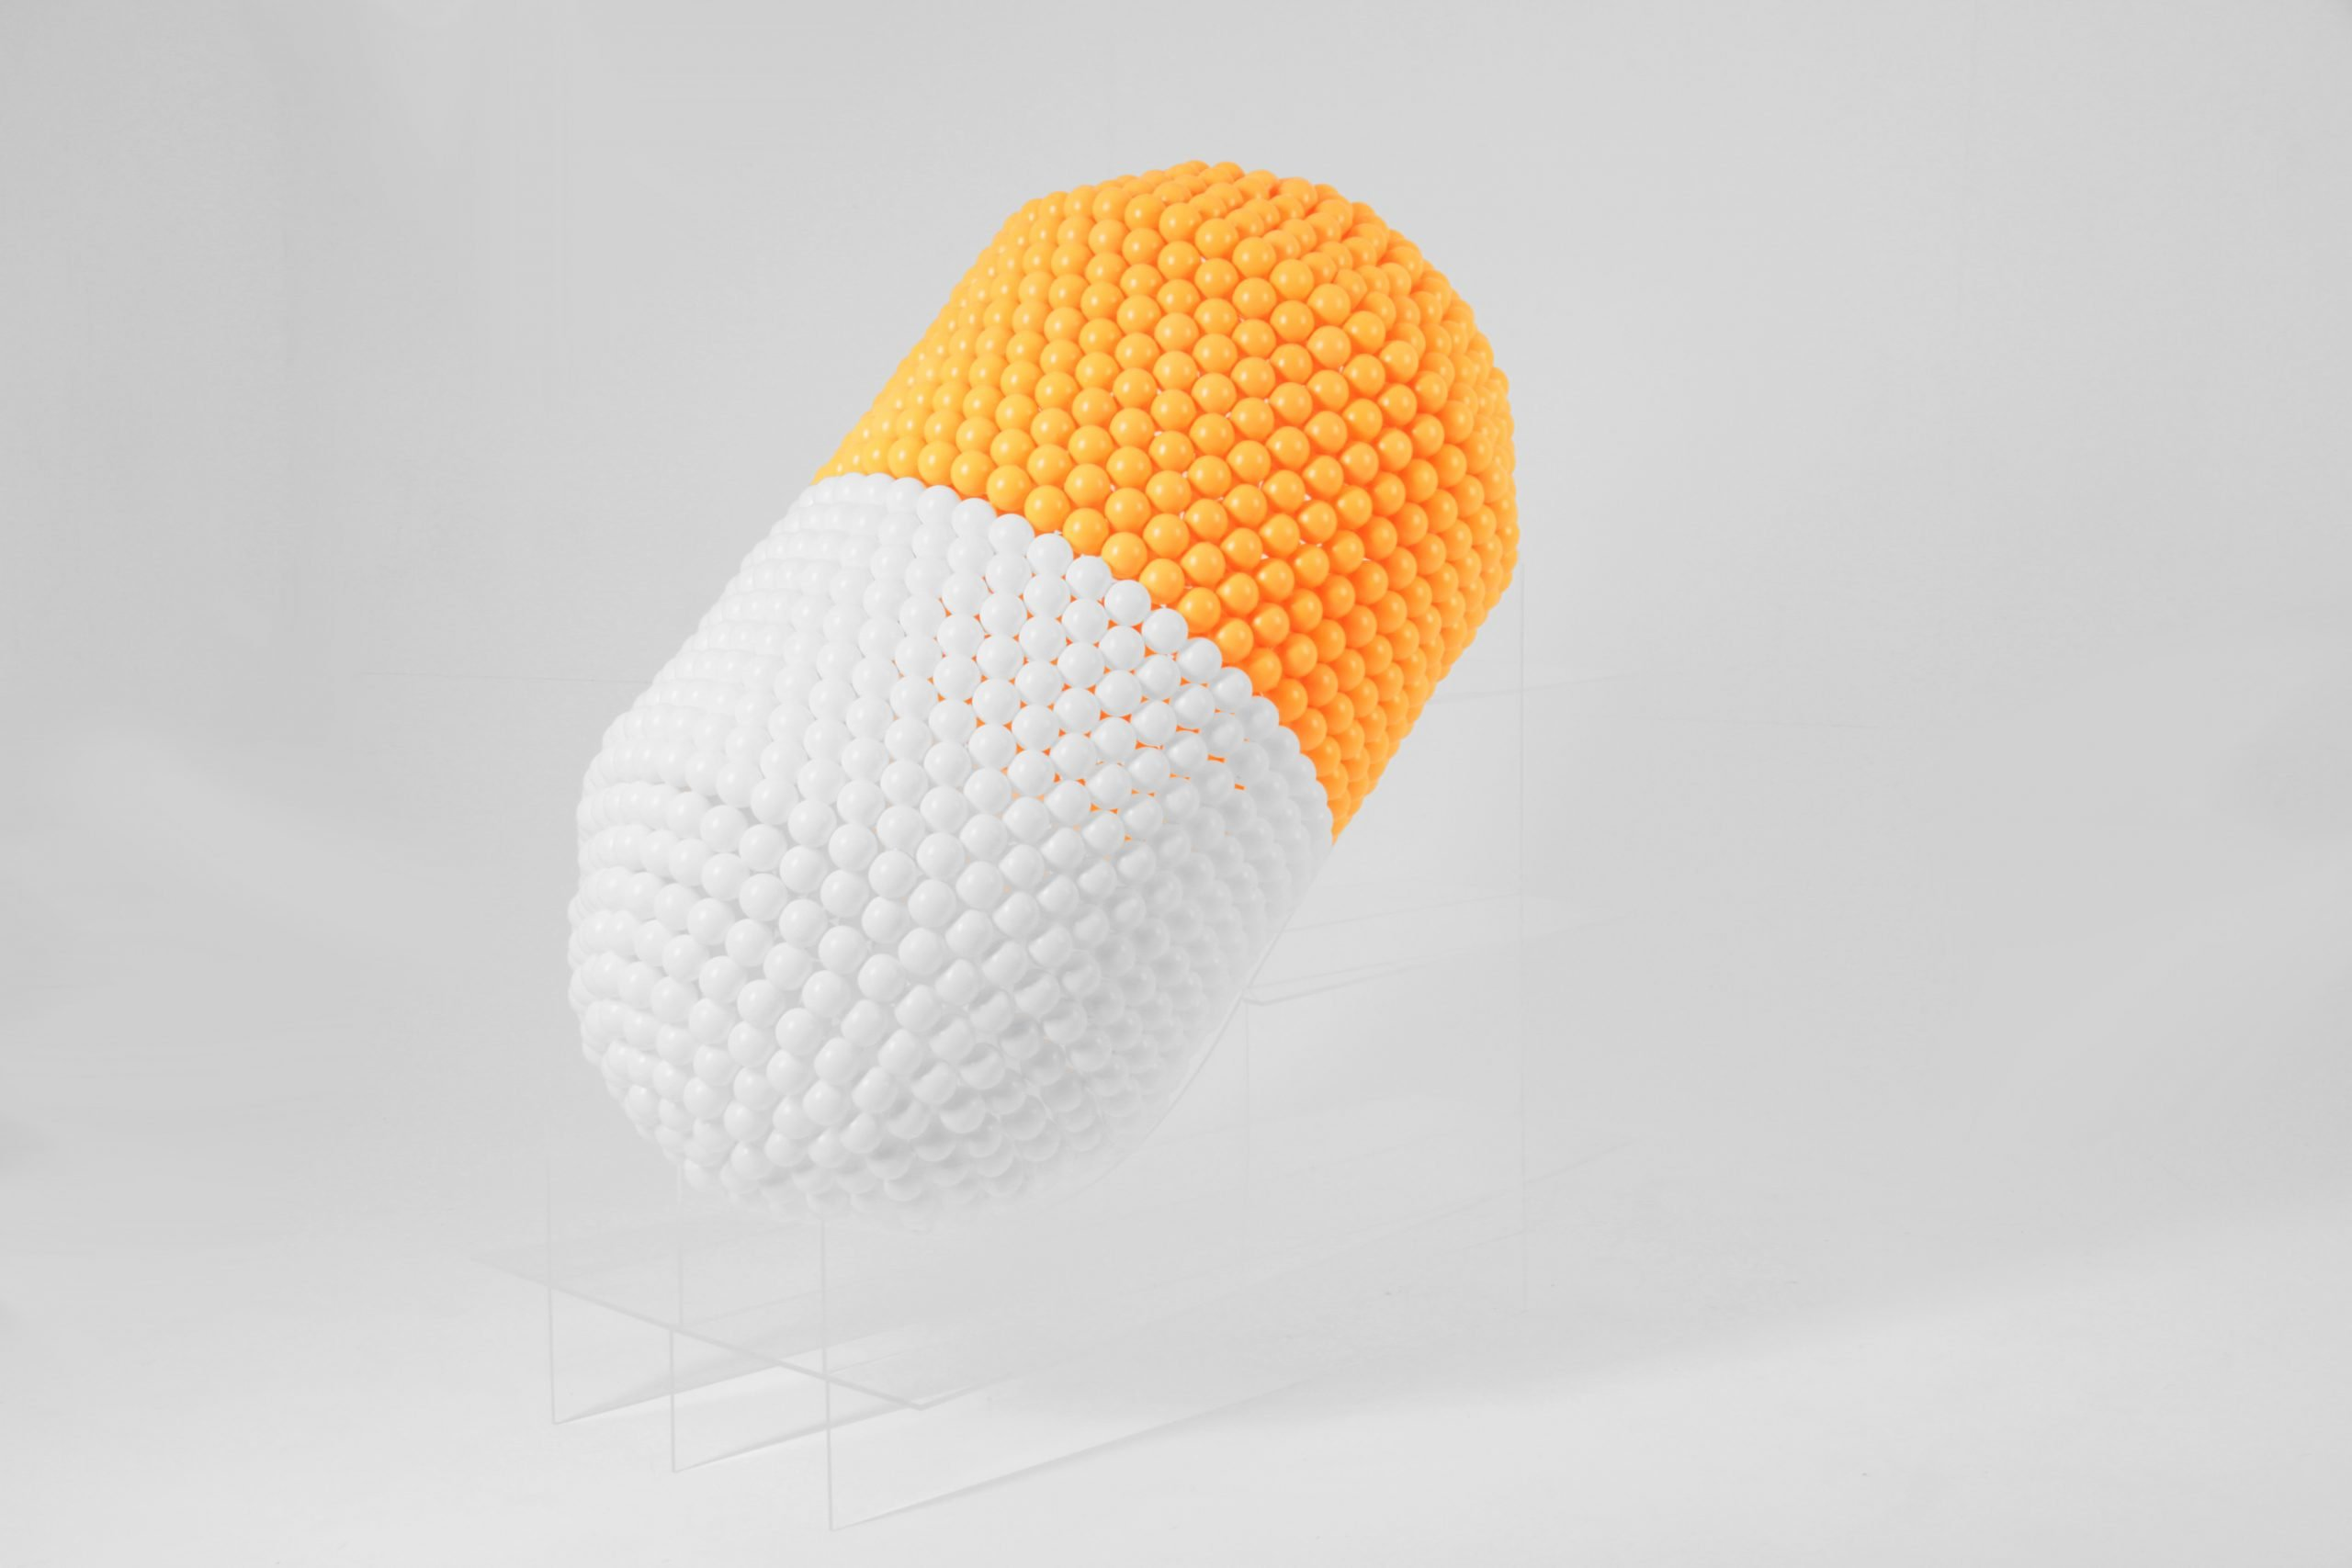 Sculpture of a pill which is half orange and half white. The structure is made from ping pong balls. Designed and created by design studio Lazerian.